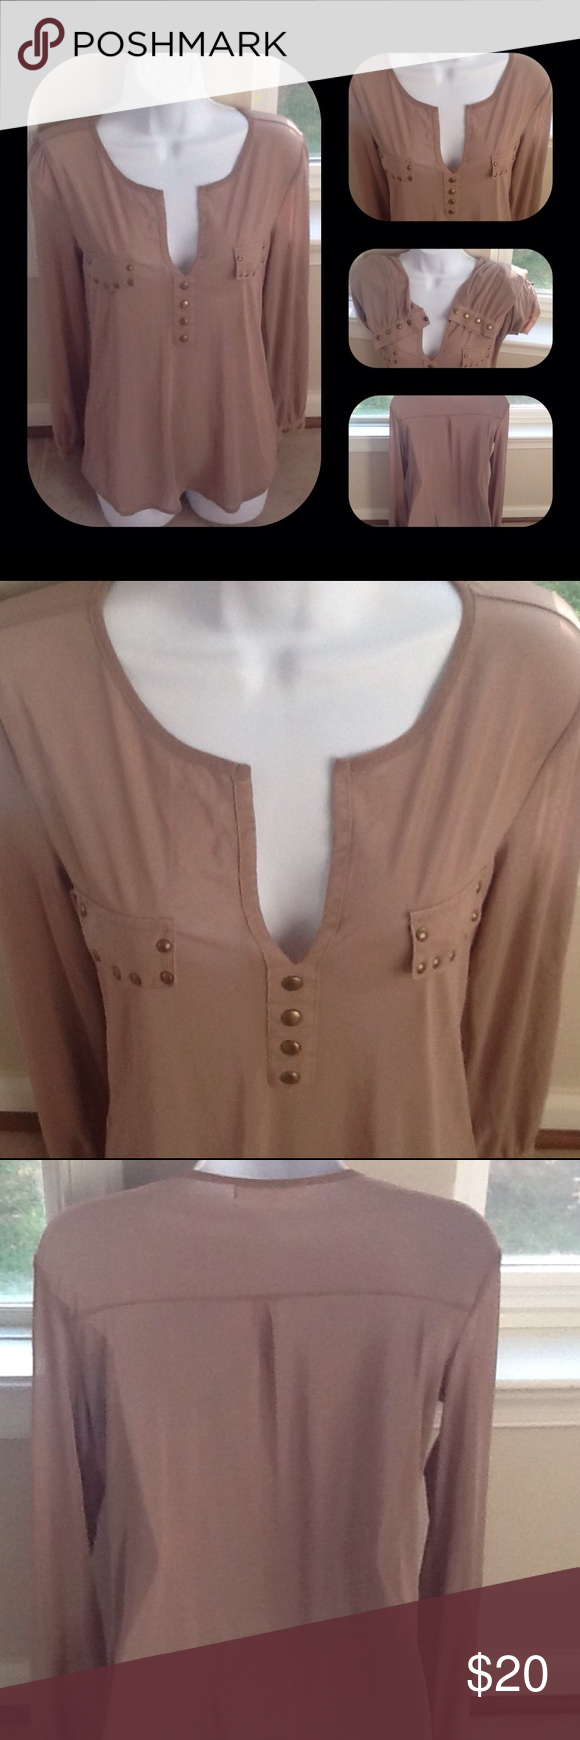 f598261a33e 👚Beautiful Taupe Blouse👚 Very lovely blouse buttons give a nice accent to  the taupe color long sleeve. V neck simple but so cute!! Eve  Olivia Tops  ...